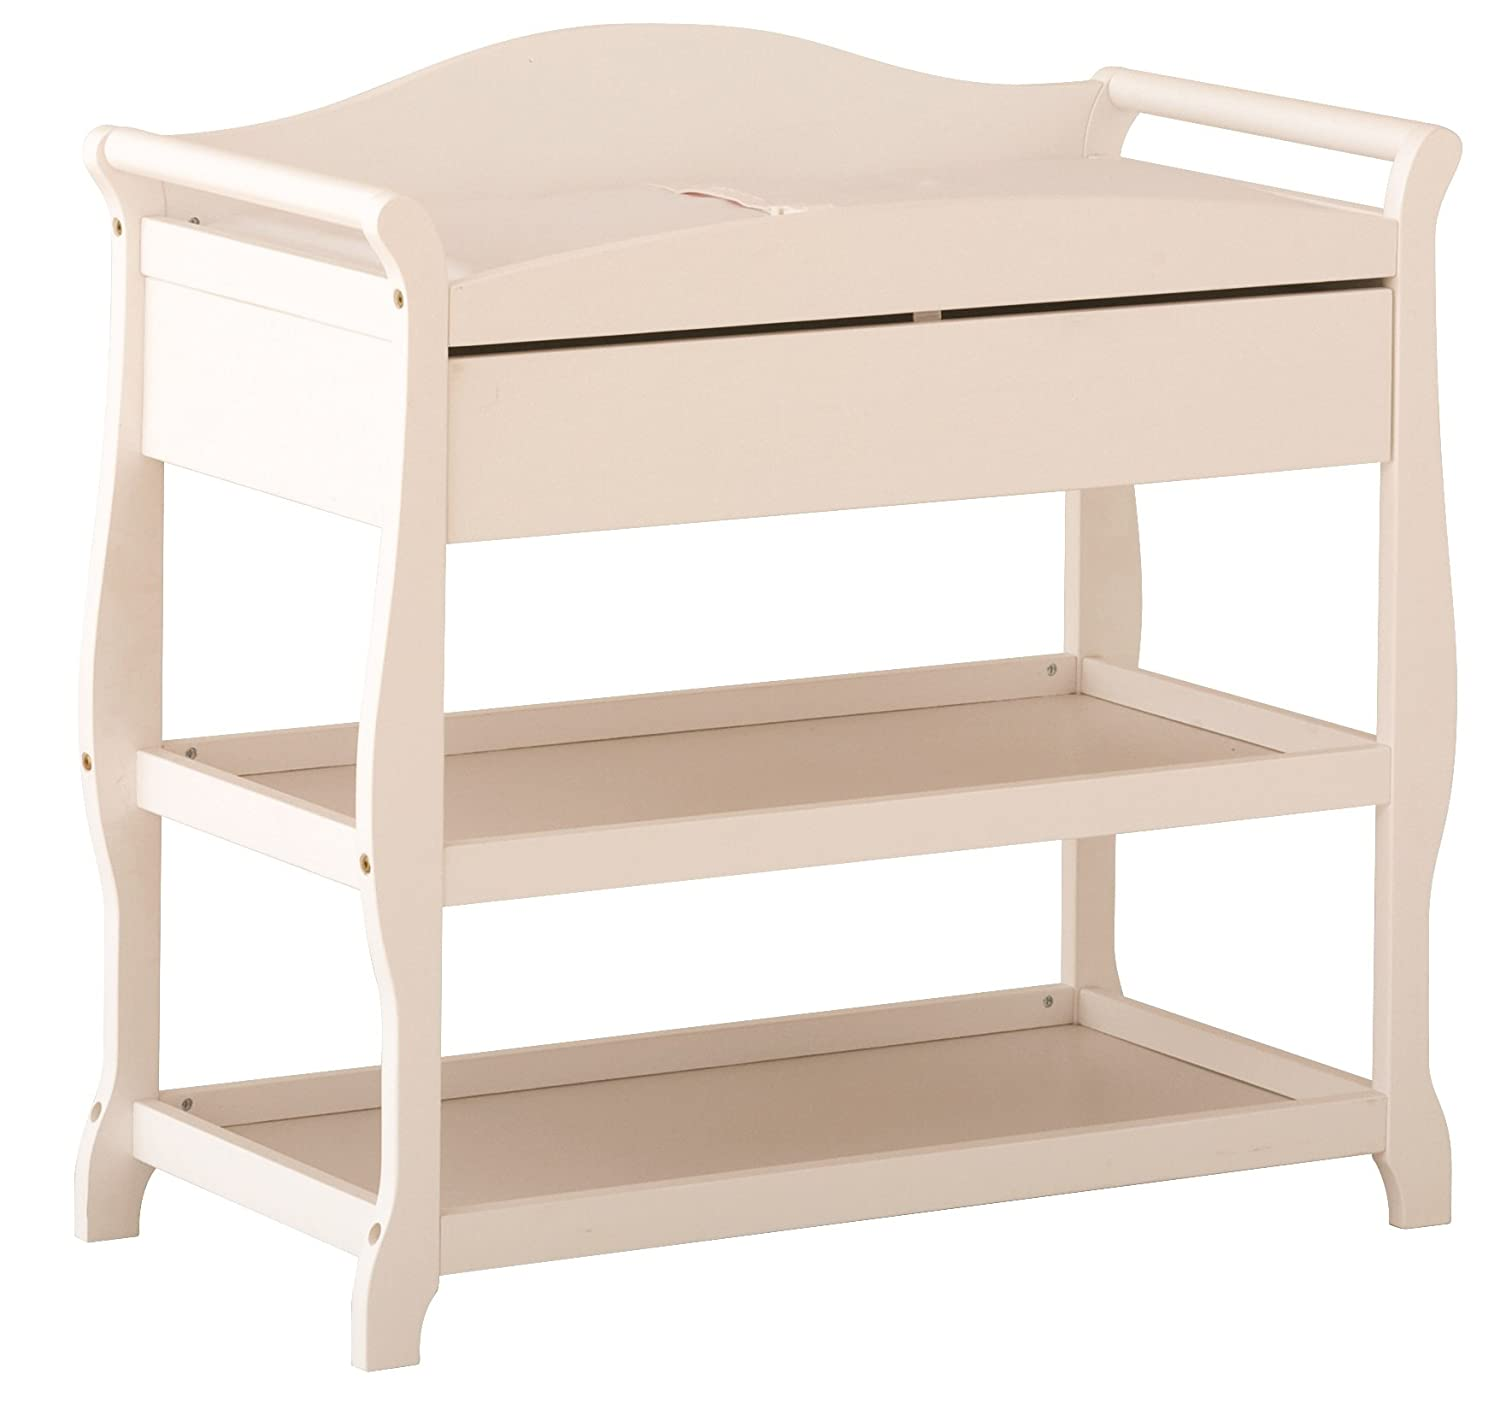 Storkcraft Aspen Changing Table, Espresso Stork Craft 00524-589